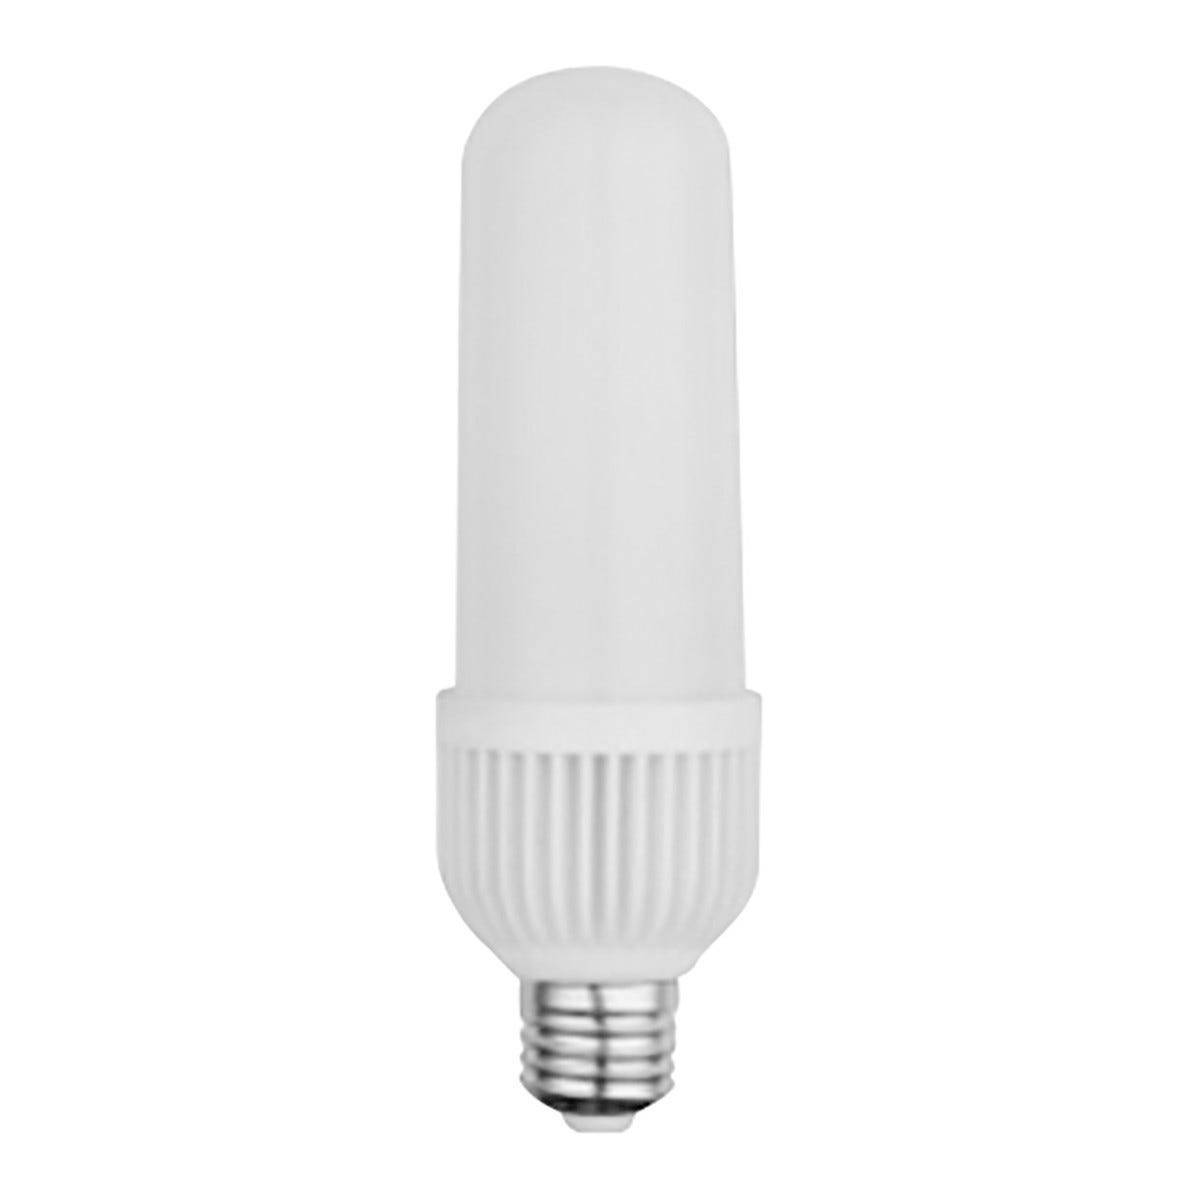 VIVIDA INTERNATIONAL Lampadina Vivida Led U-Shape E27 11w=70w 980 Lumen 6500k Luce Fredda Dimensioni Ø43x160 Mm